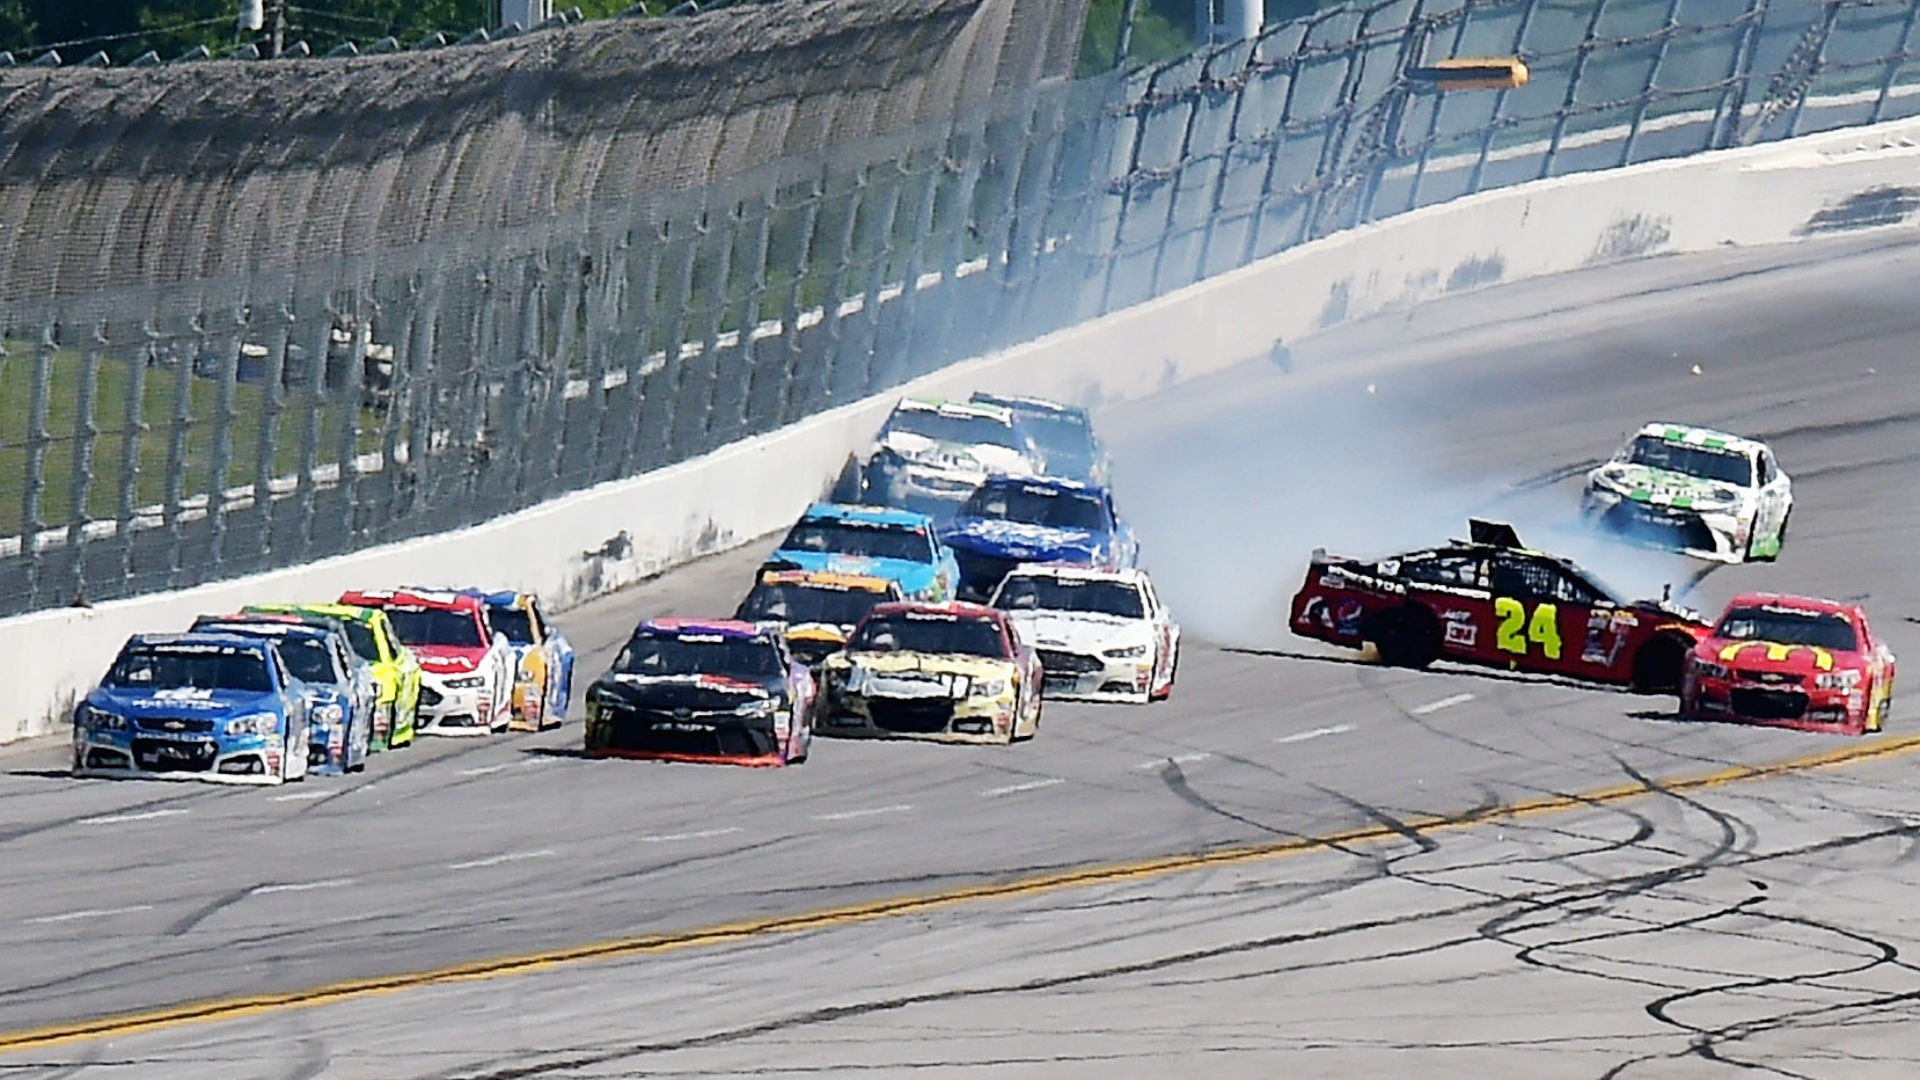 Jeff Gordon disappointed with latest pit road mistake, this time at Talladega